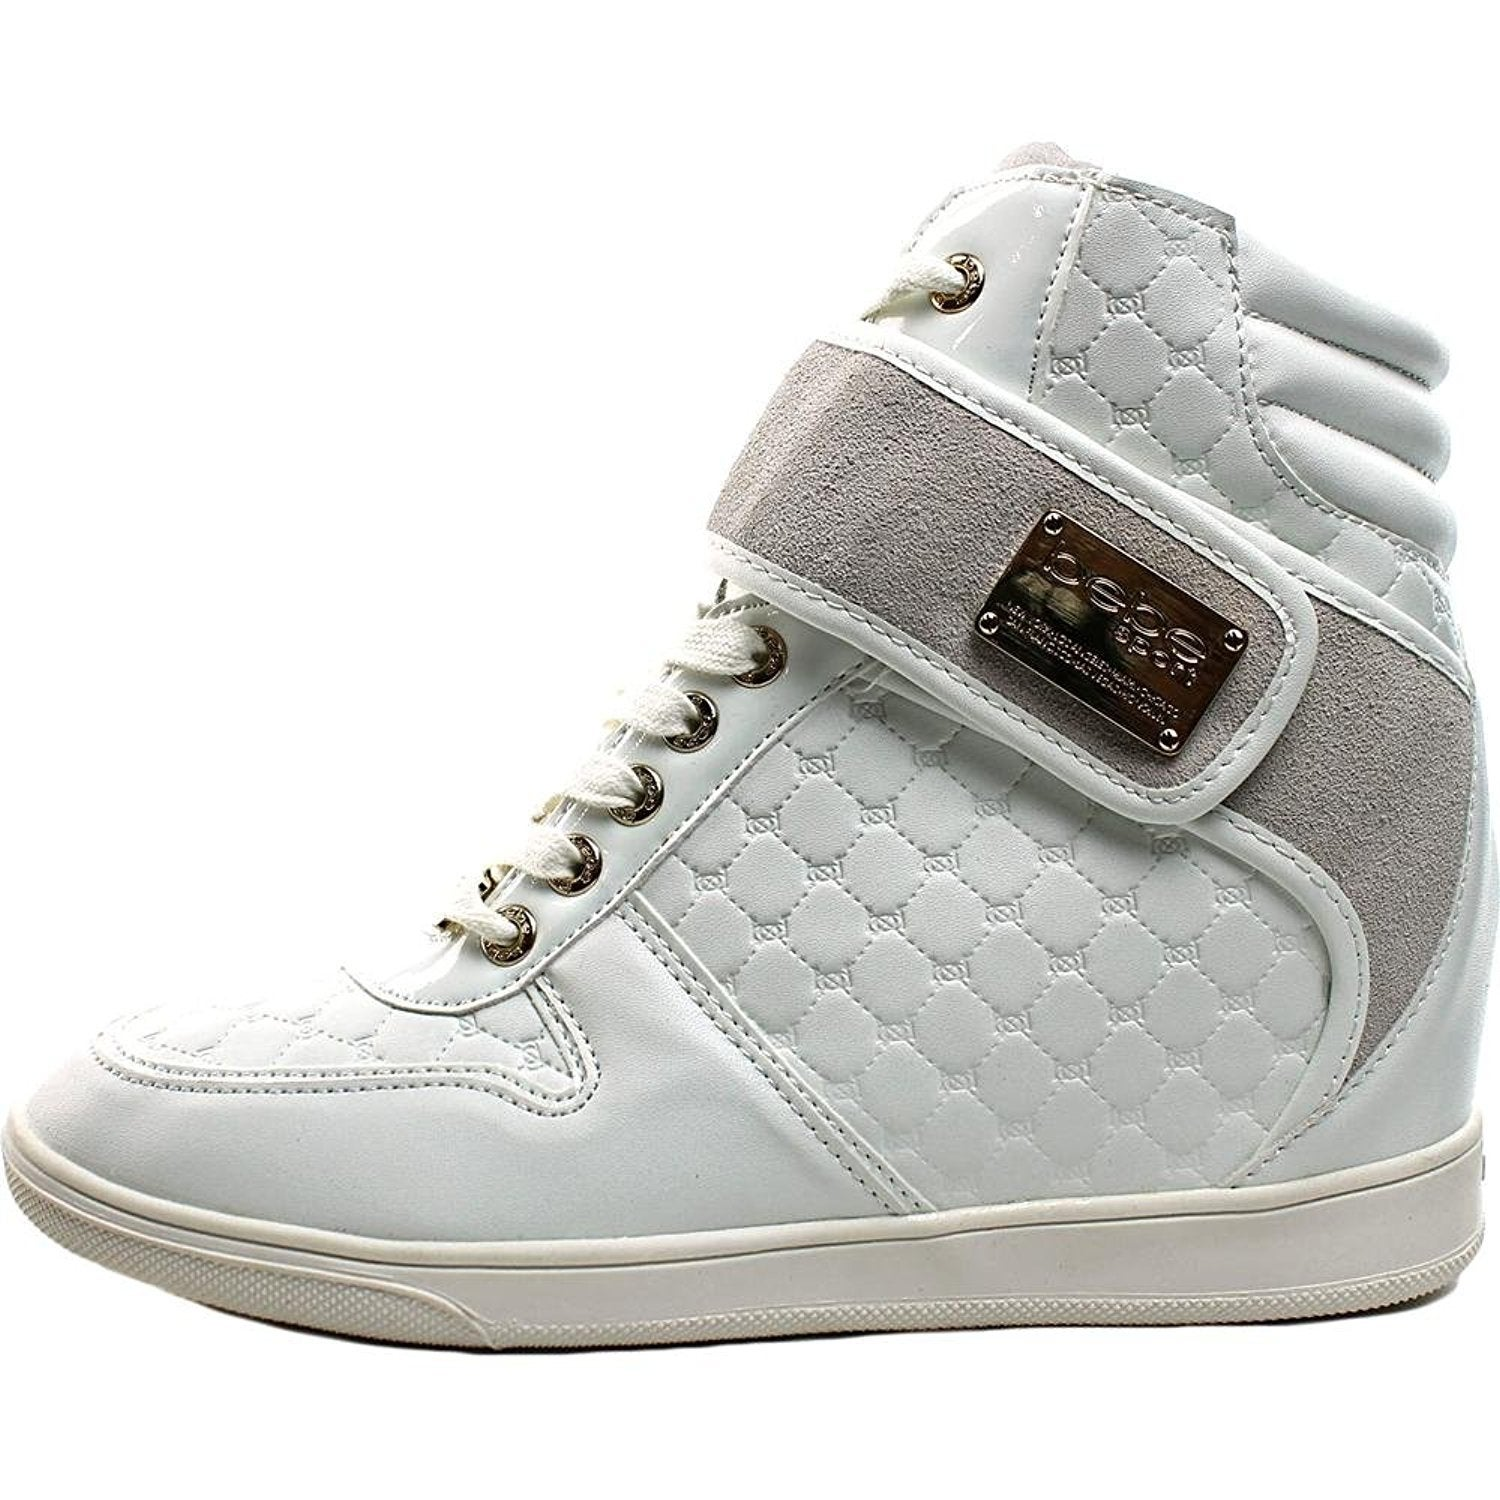 abaf898ac459 Shop Bebe Womens Colby Hight Top Lace Up Fashion Sneakers - Free Shipping  On Orders Over  45 - Overstock - 16687069